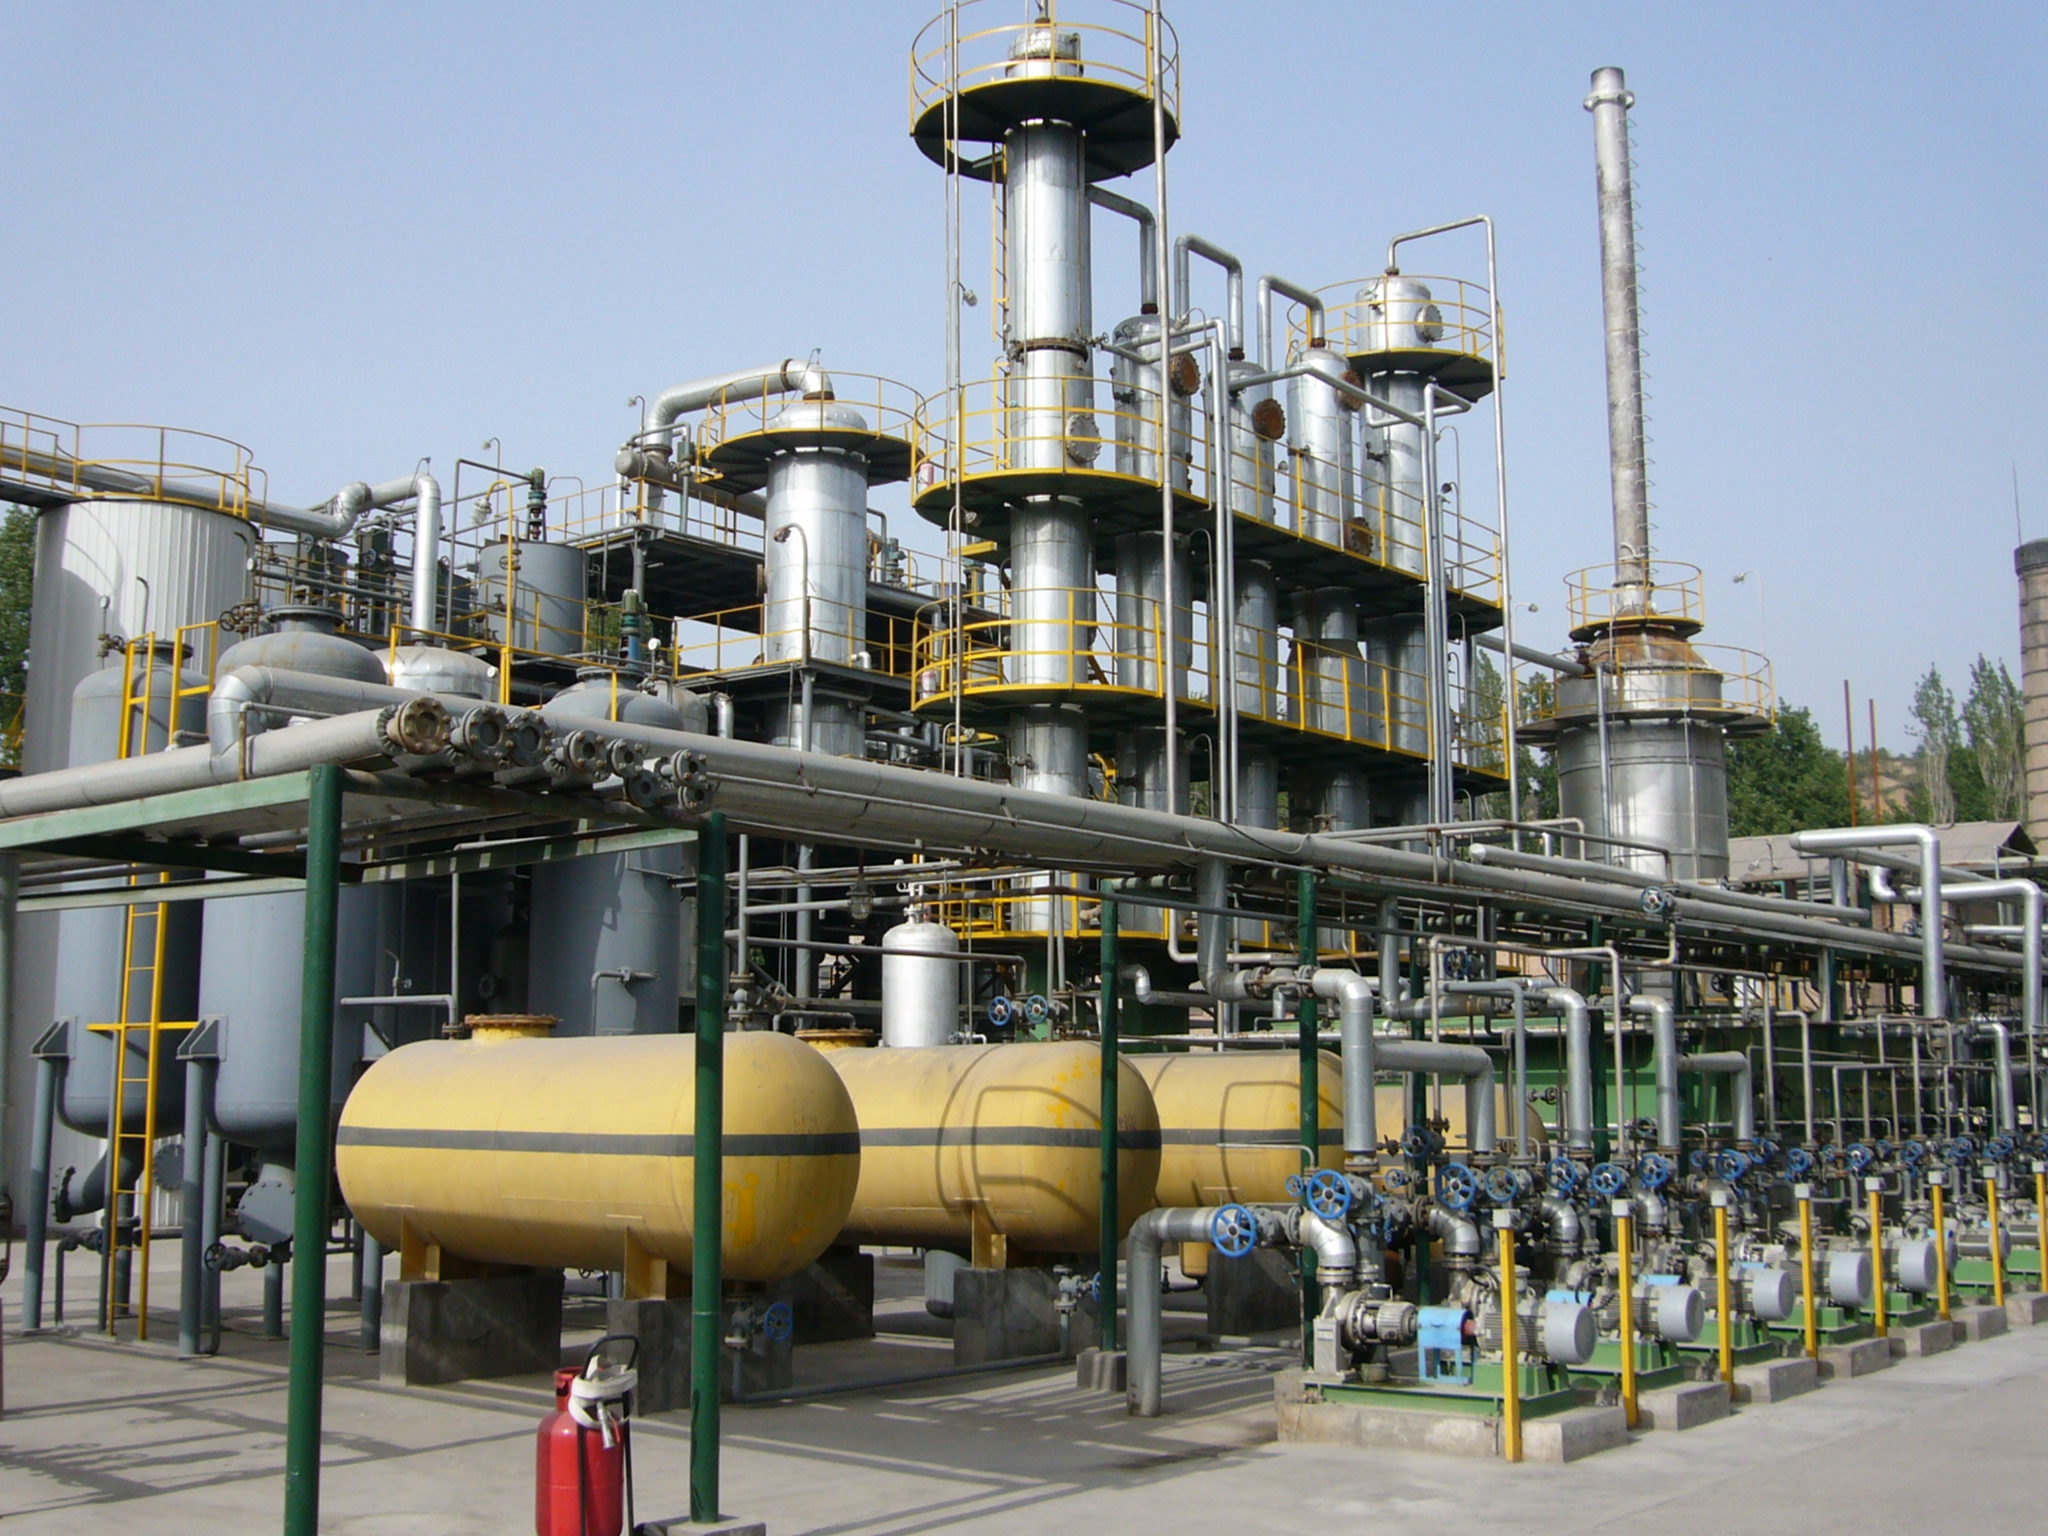 http://a.eqcdn.com/chinaintegratedenergyinc/files/pages/business-units/biodiesel-production-sales/100k-tongchuan-city-biodiesel-facility/biodiesel2.jpg